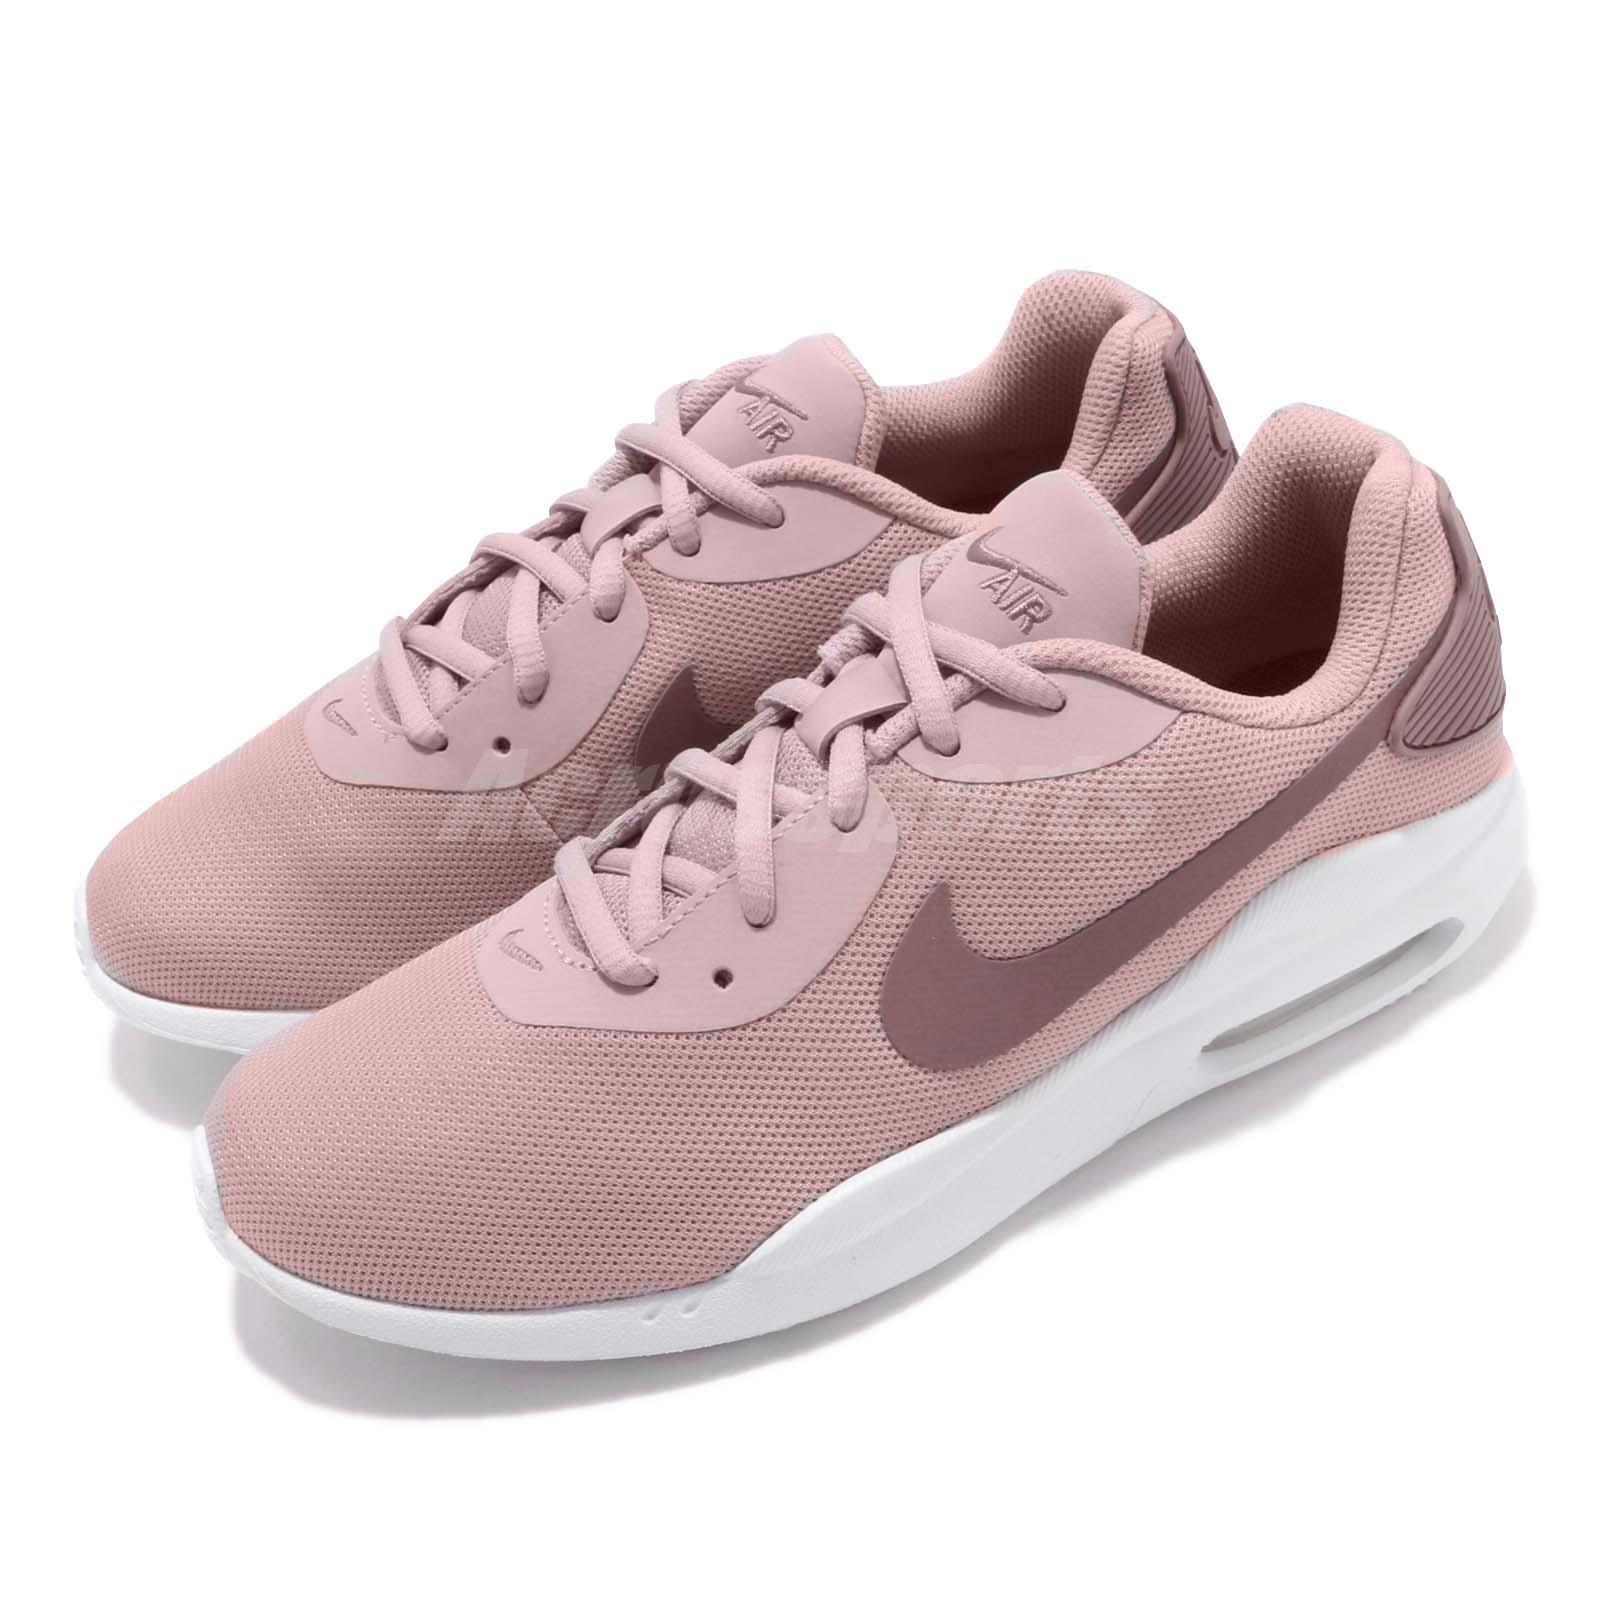 53a9be4abf71 Details about Nike Wmns Air Max Oketo Plum Chalk Dust White Women Running  Shoes AQ2231-500